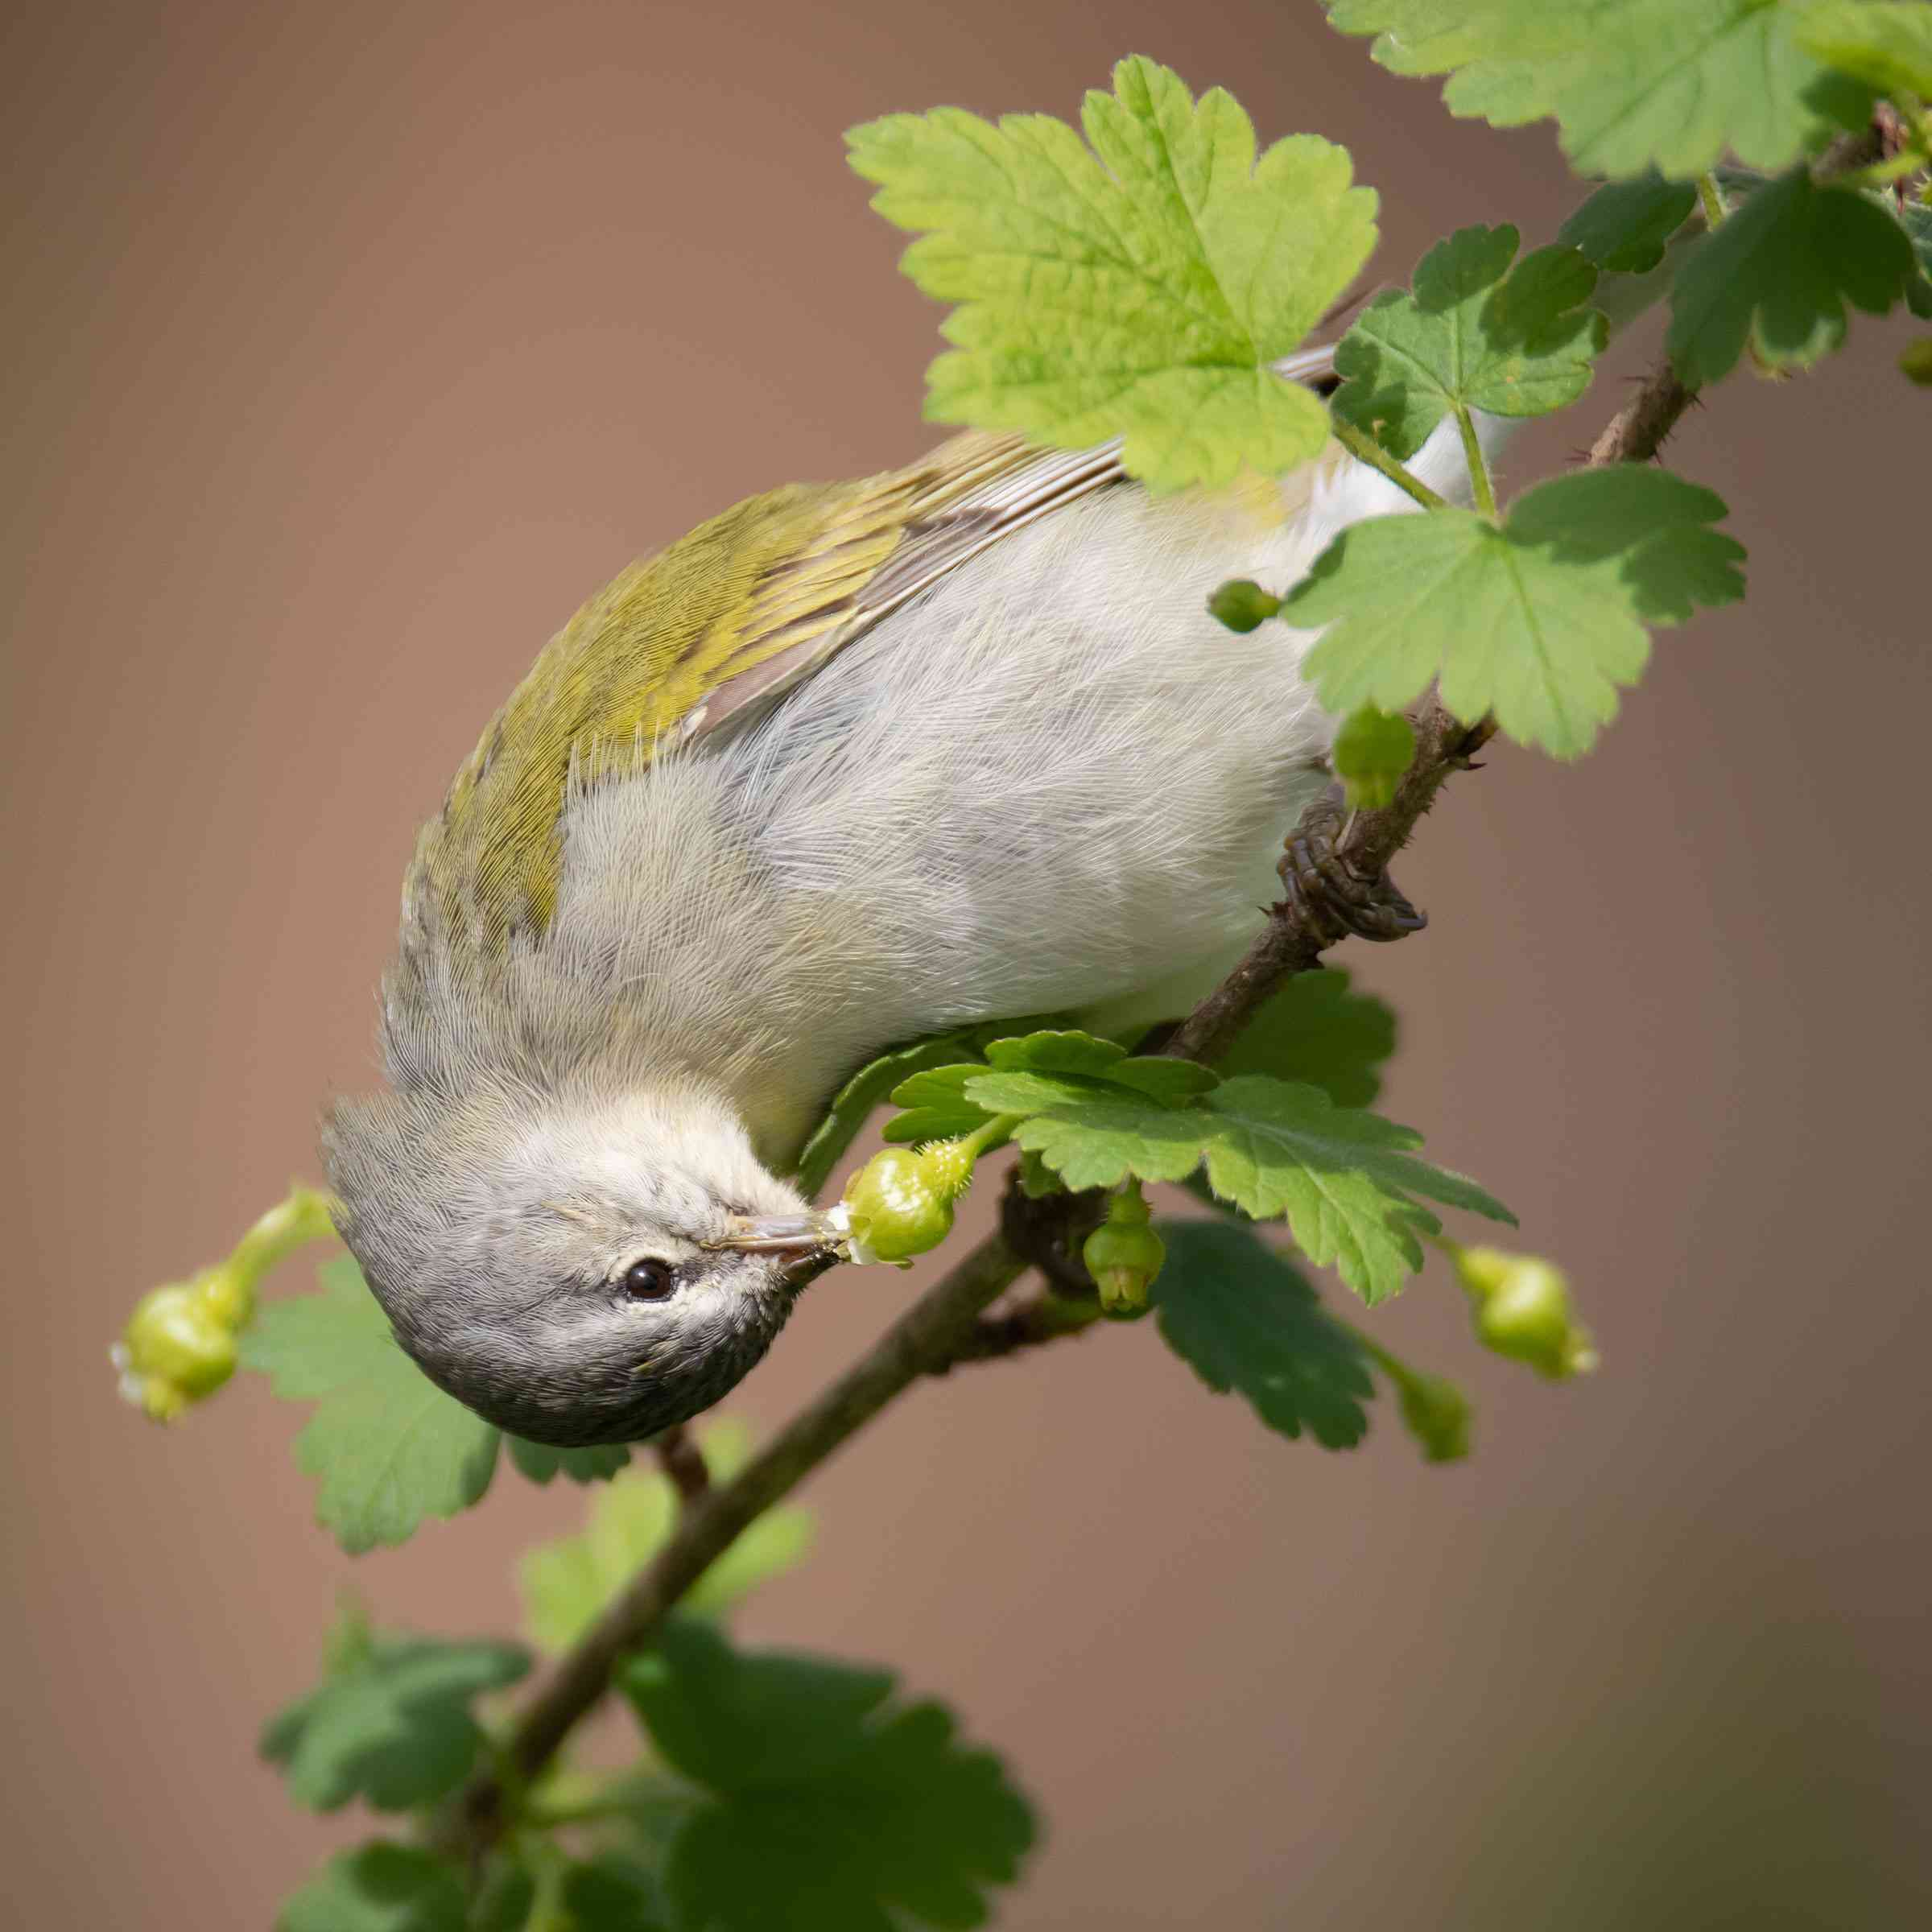 Tennessee Warbler on an eastern prickly gooseberry